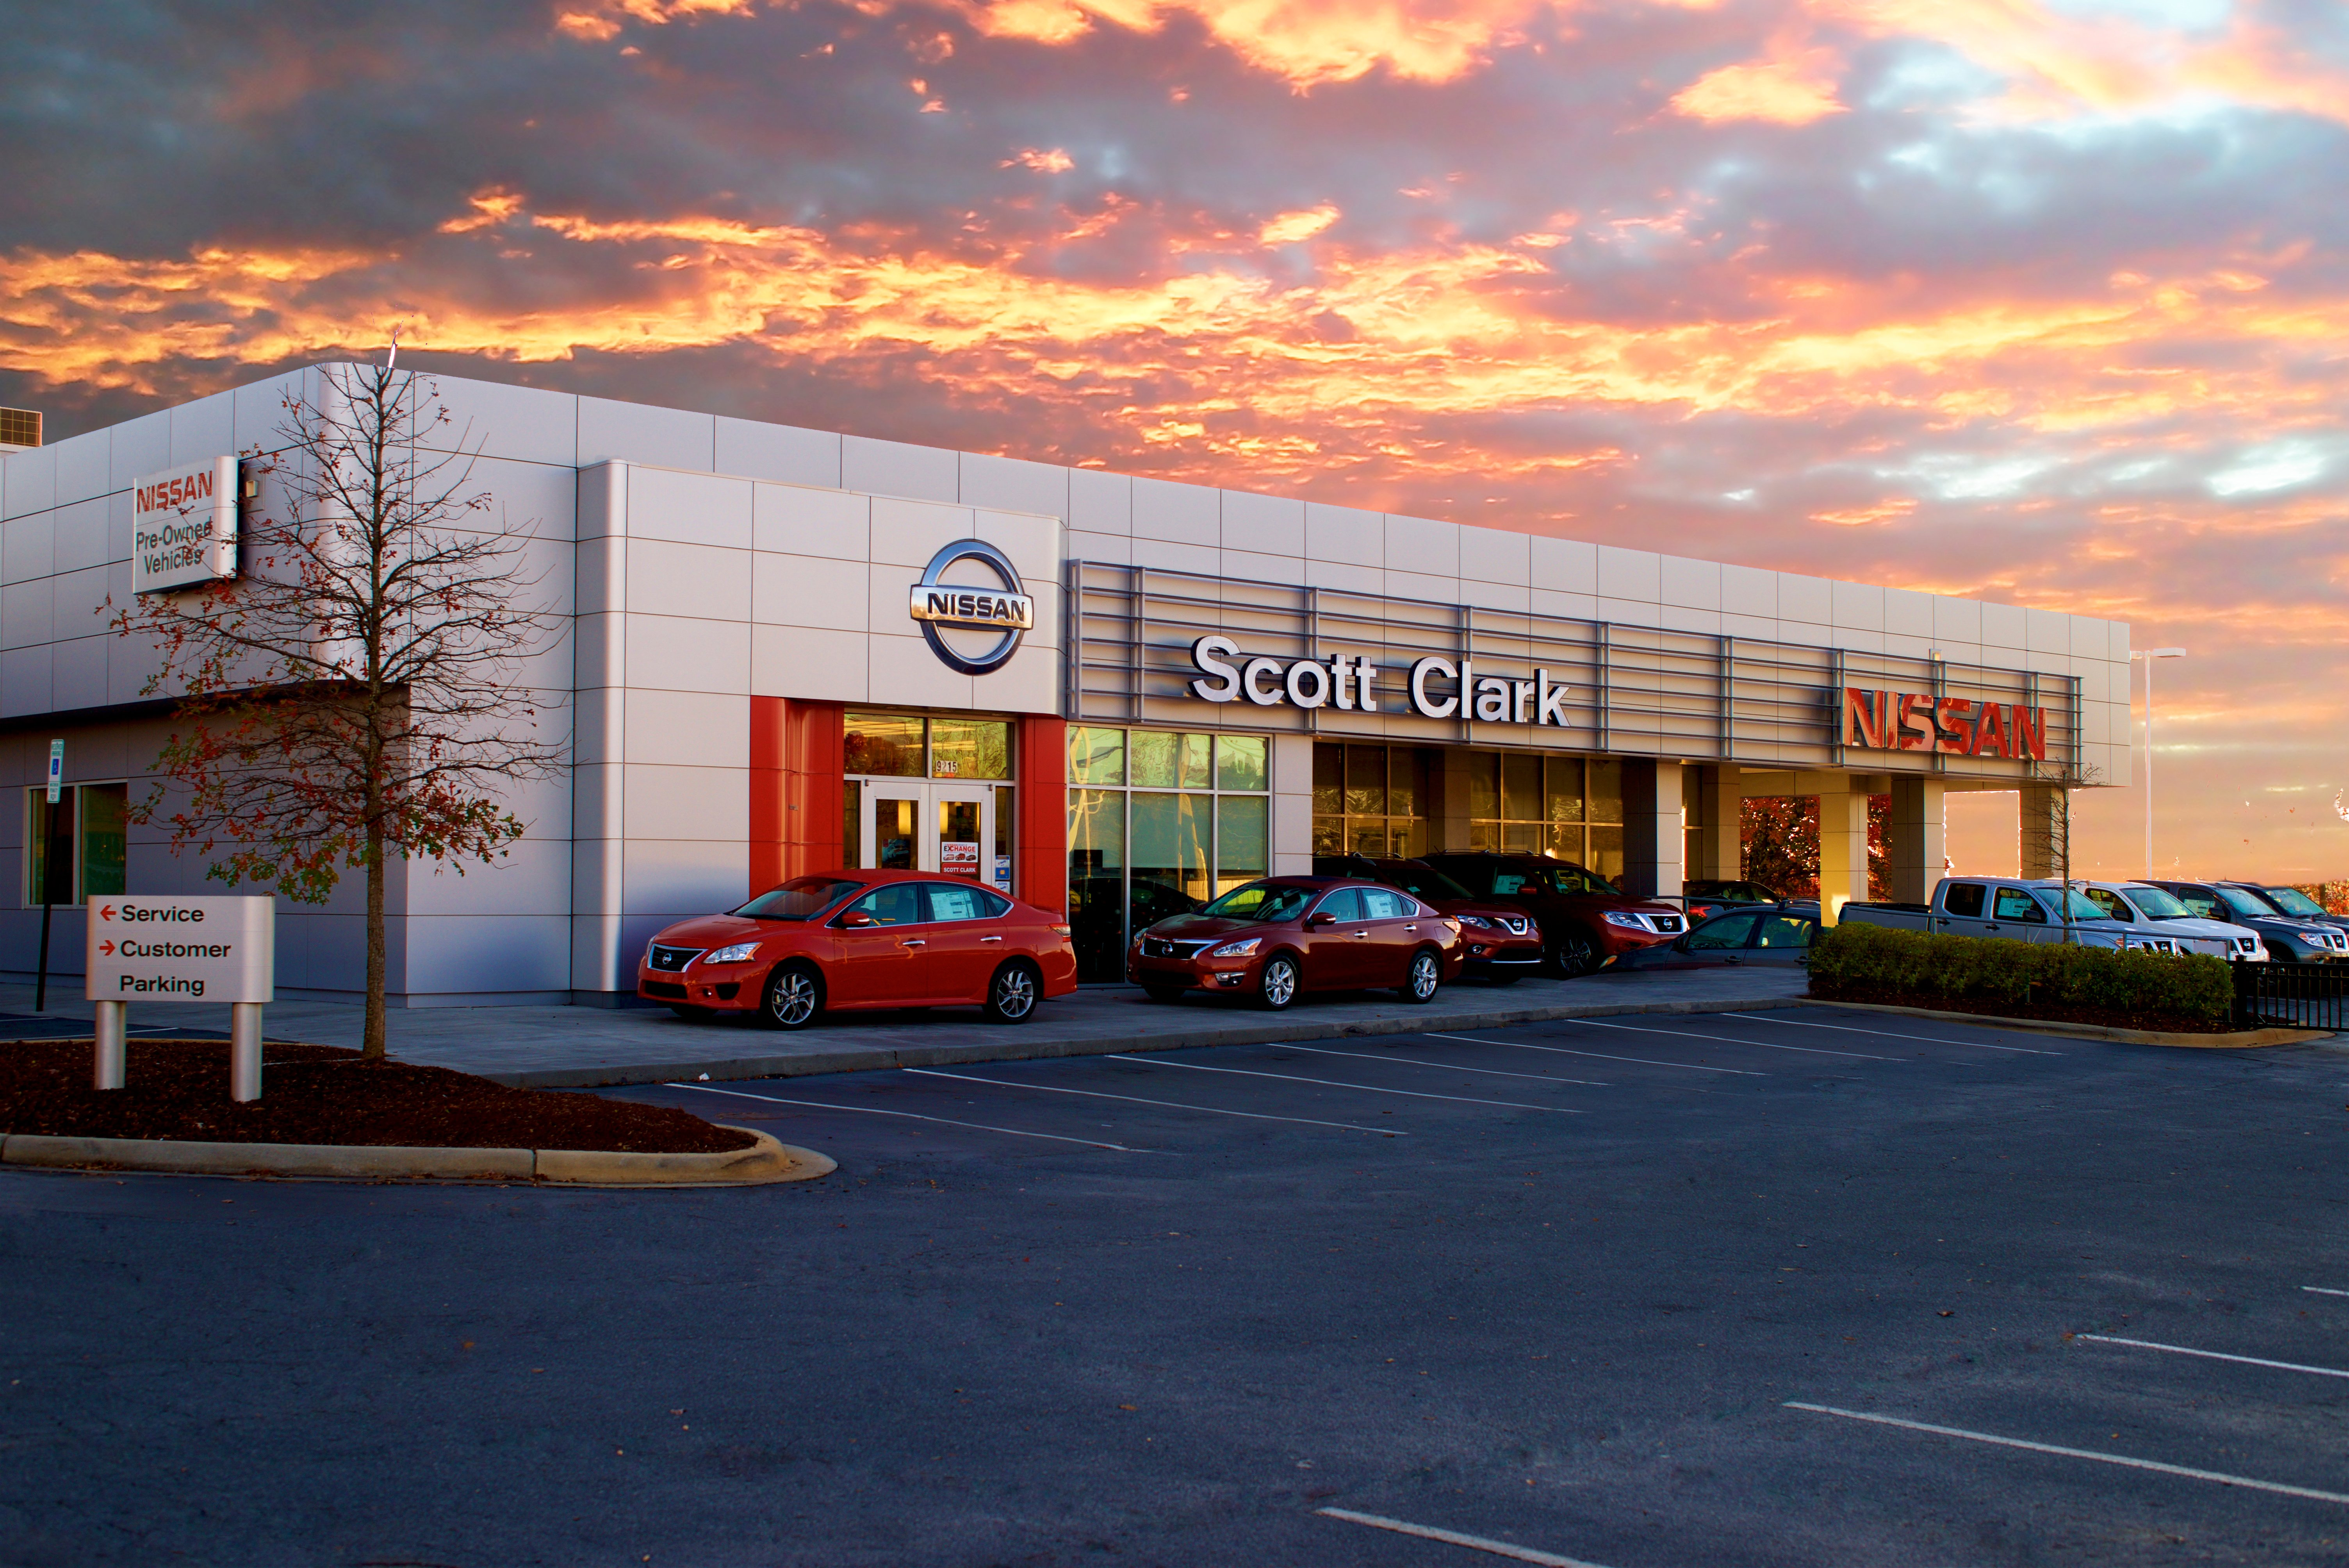 local charlotte nissan dealership named one of the 50 best in the world wccb charlotte. Black Bedroom Furniture Sets. Home Design Ideas